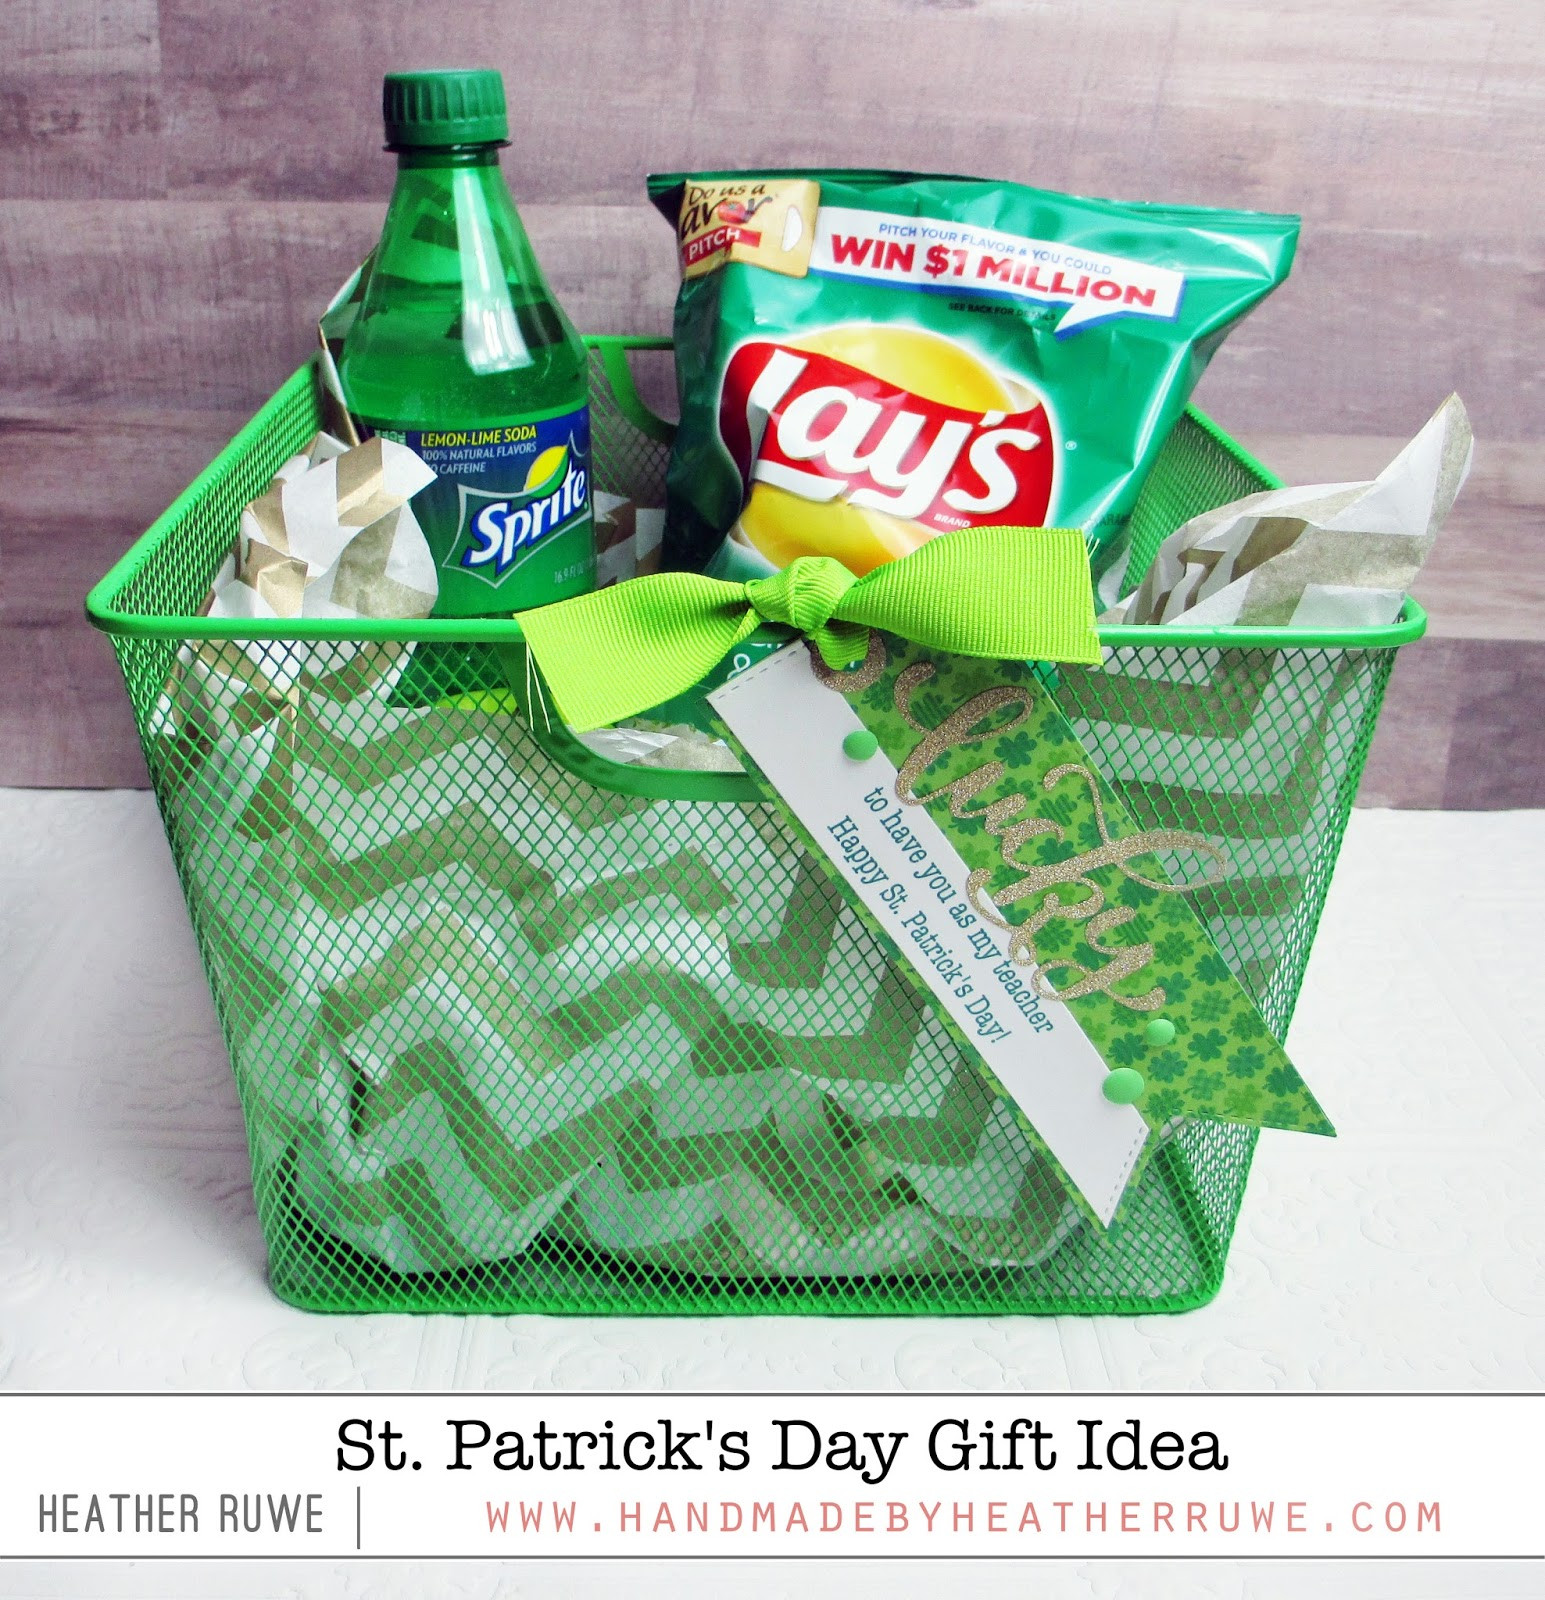 St Patrick's Day Gifts  Handmade by Heather Ruwe St Patrick s Day Gift Idea